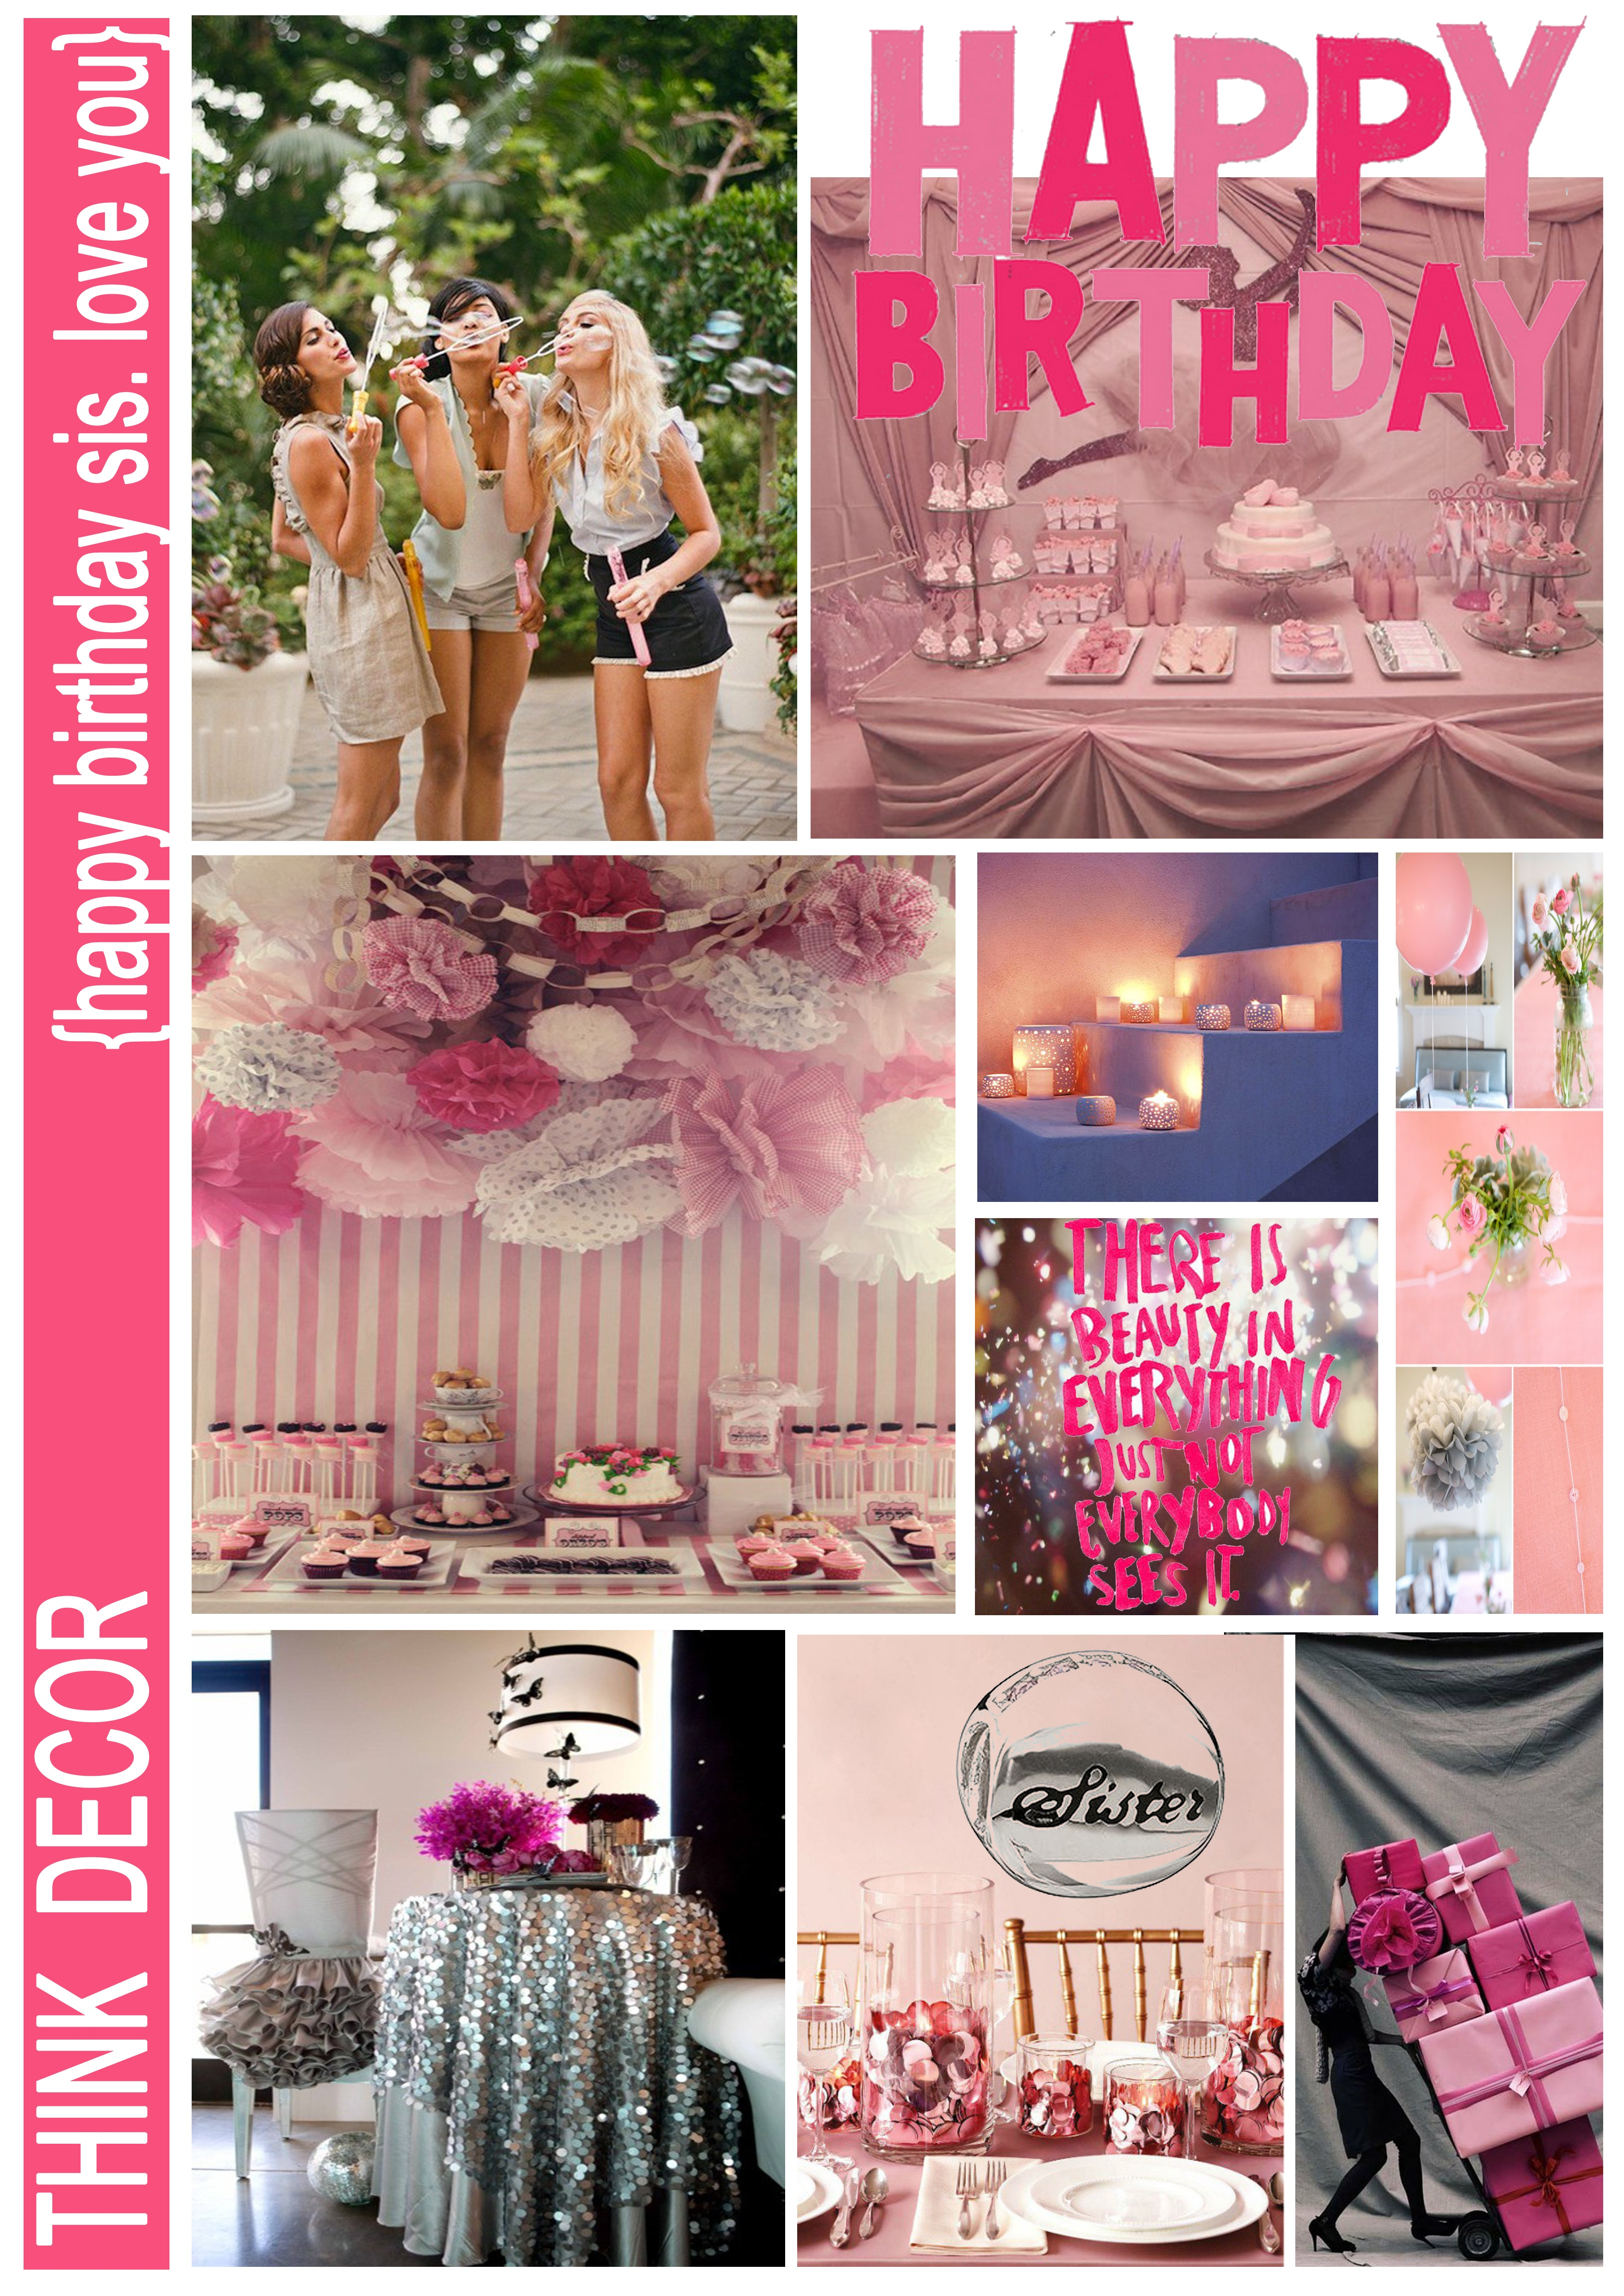 Birthday party theme ideas 21st image inspiration of for 21st birthday party decoration